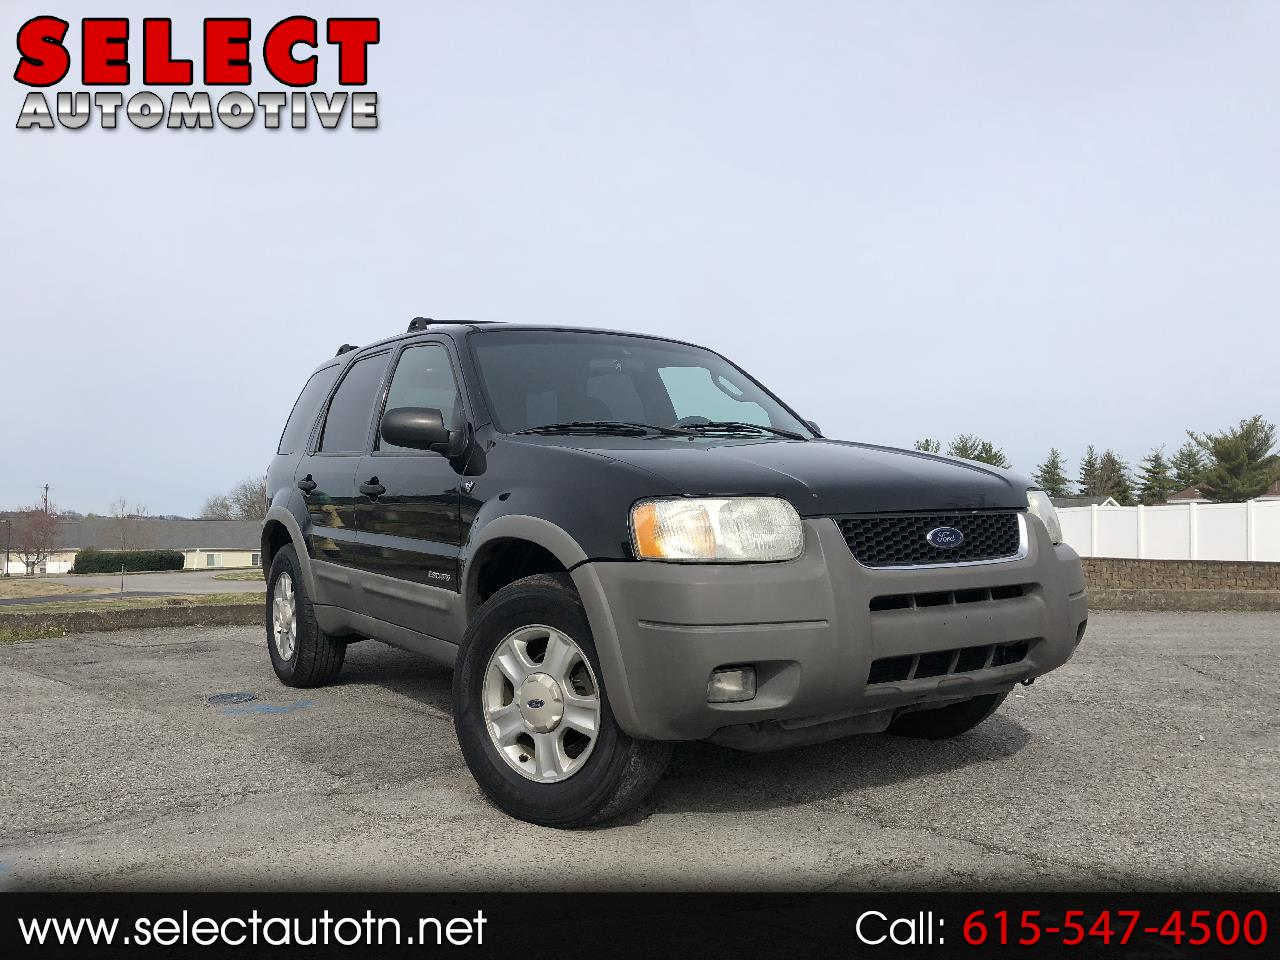 2002 Ford Escape XLT Choice 4WD